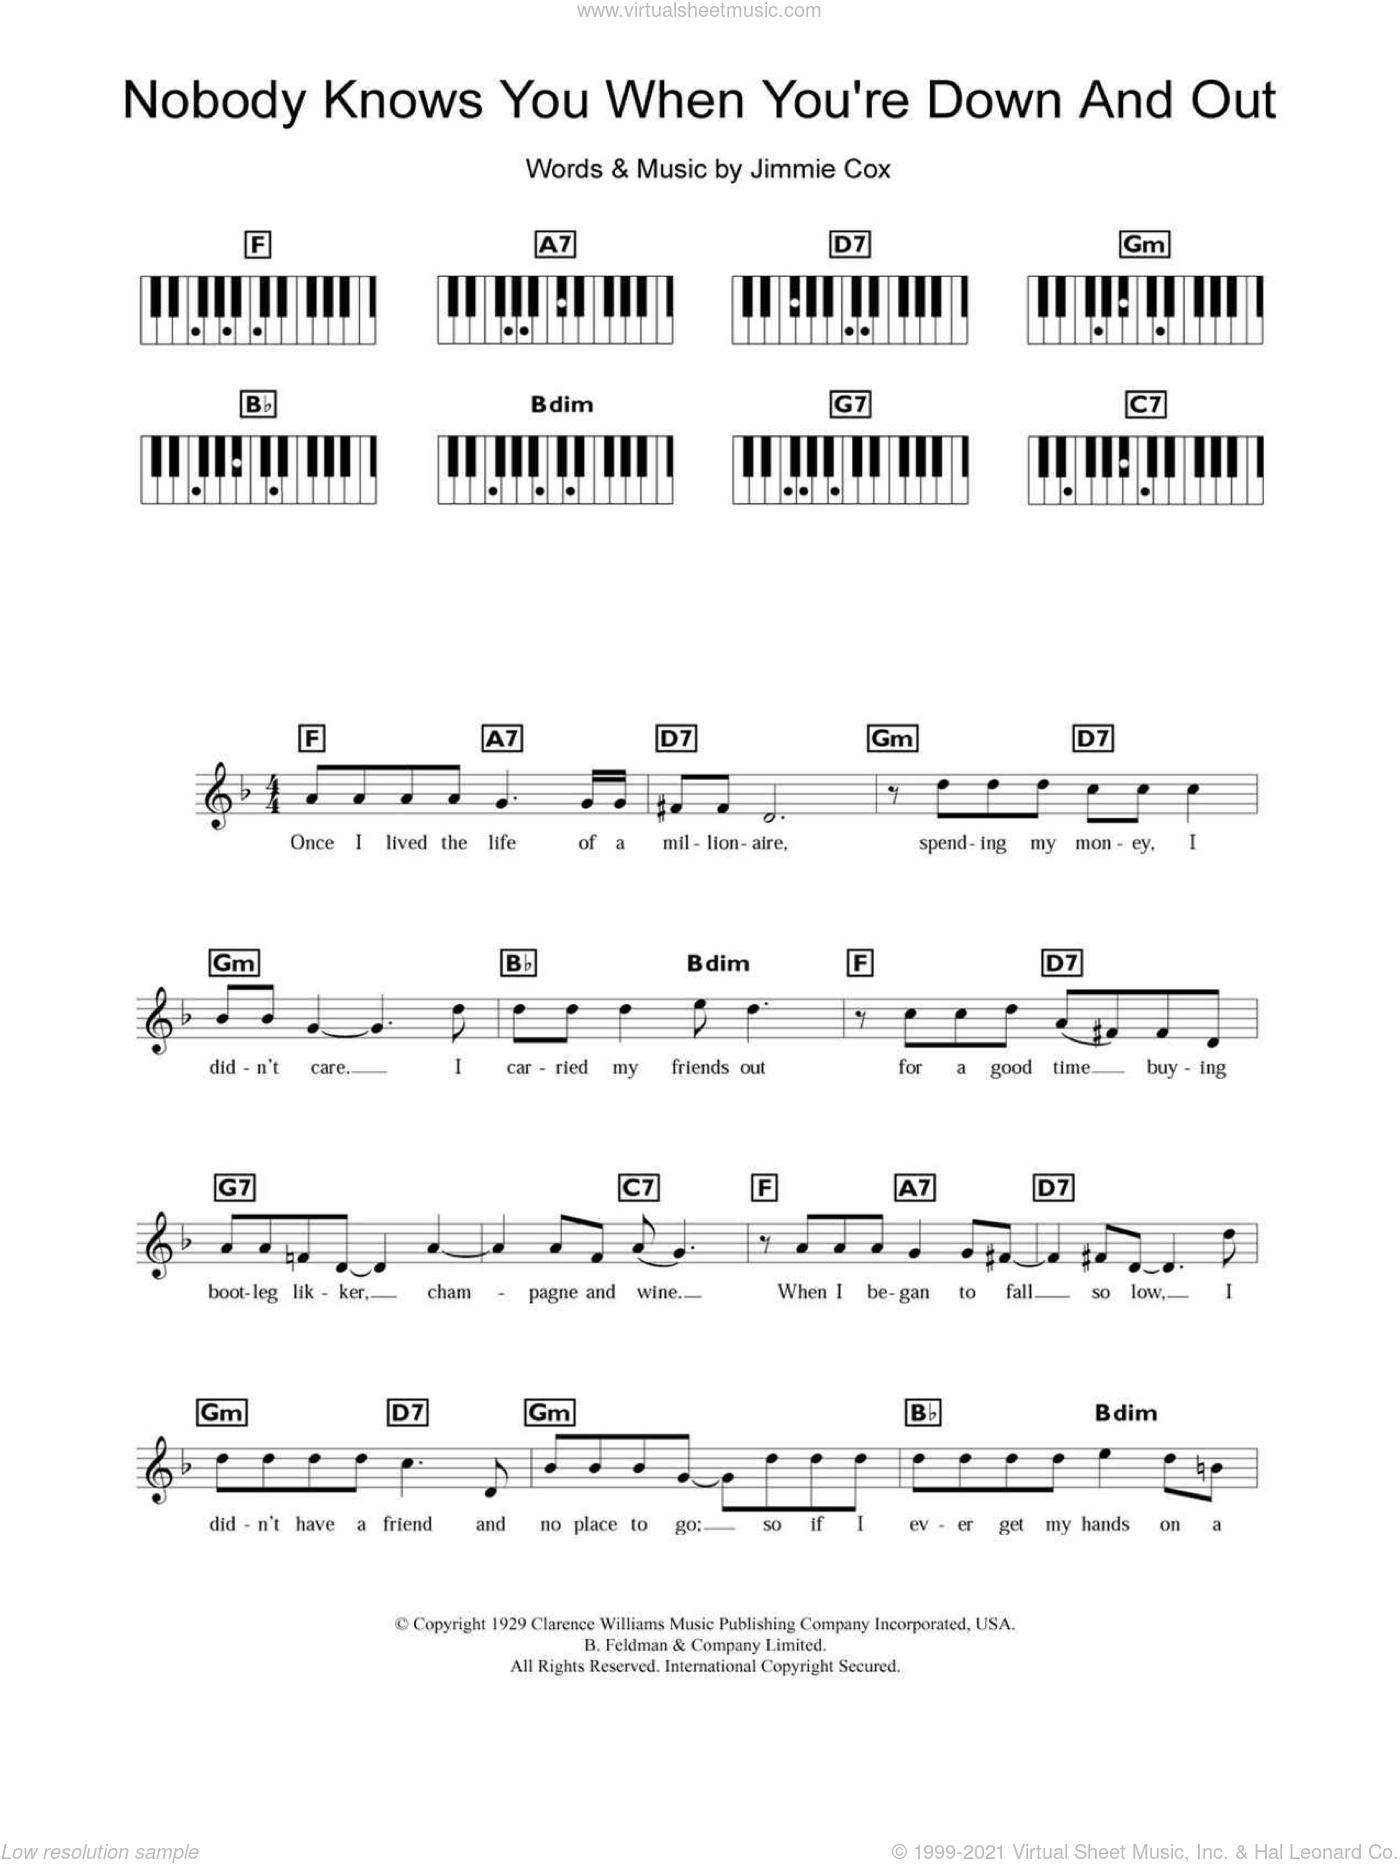 Nobody Knows You When You're Down And Out sheet music for piano solo (chords, lyrics, melody) by Jimmie Cox